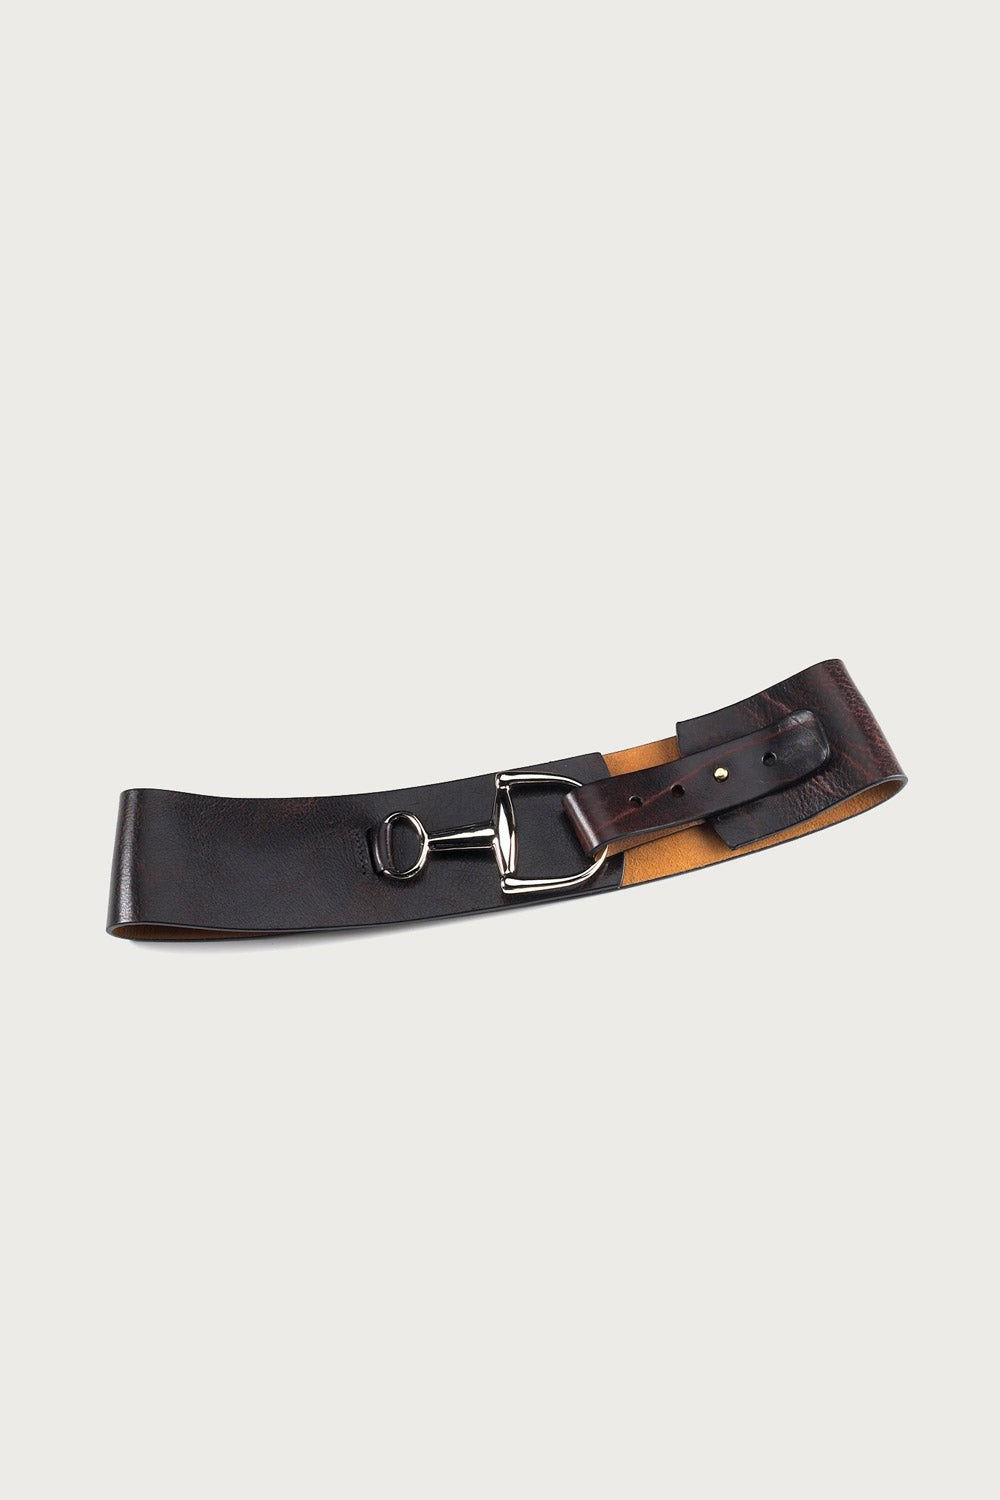 Tamma Belt in Brown